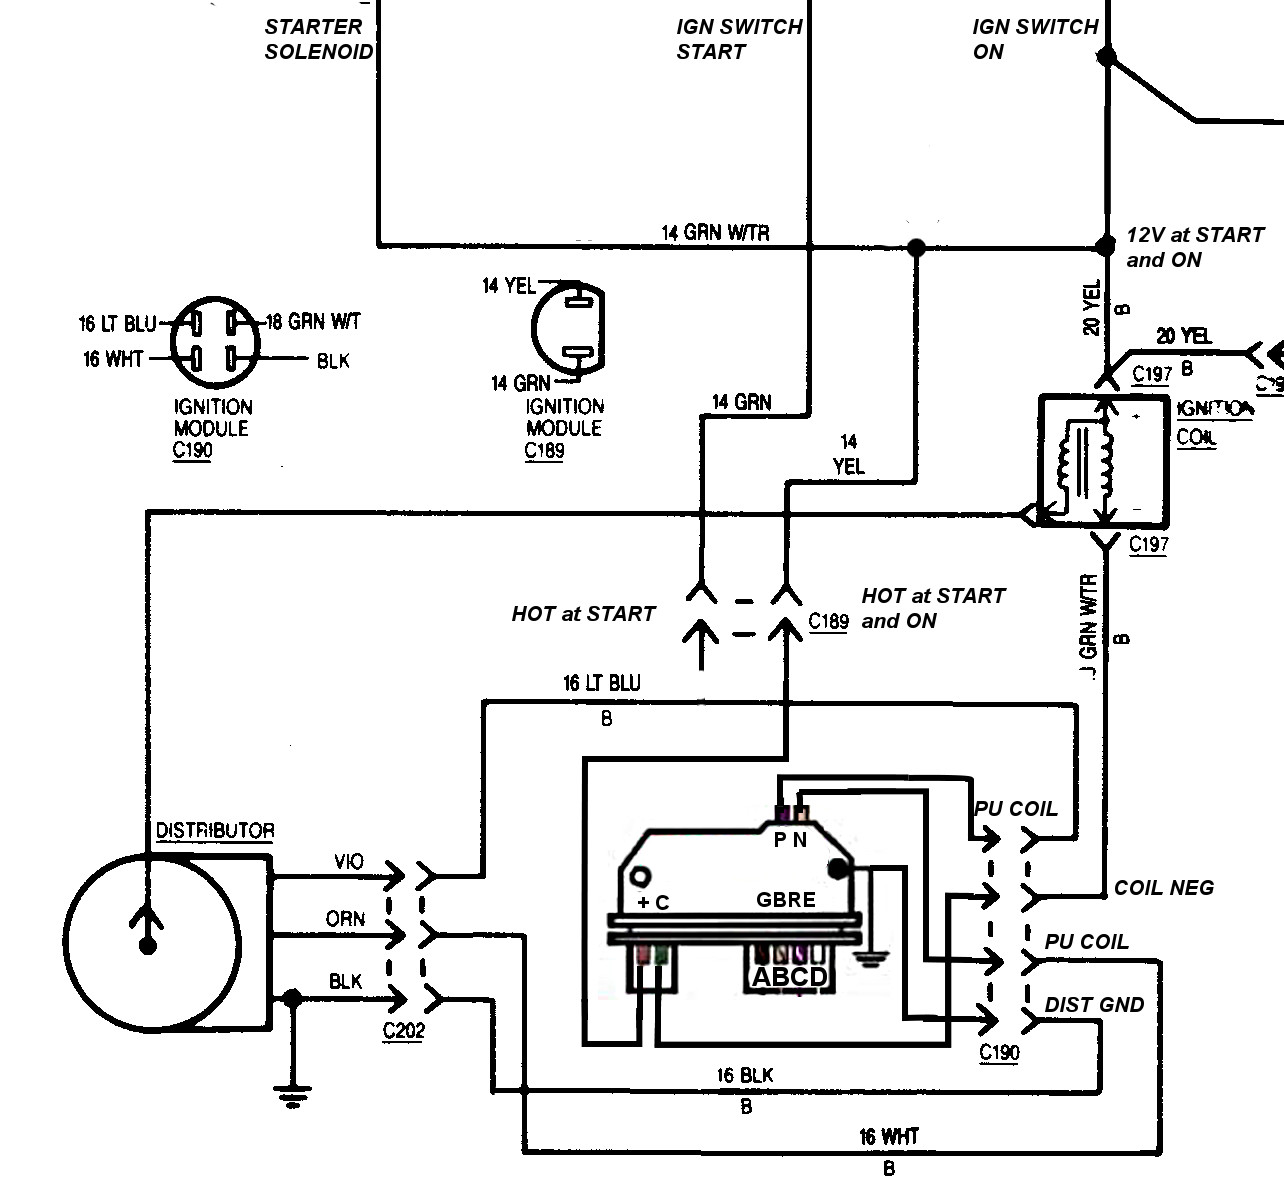 ford 302 firing order diagram 2002 xr6 duraspark ignition wiring